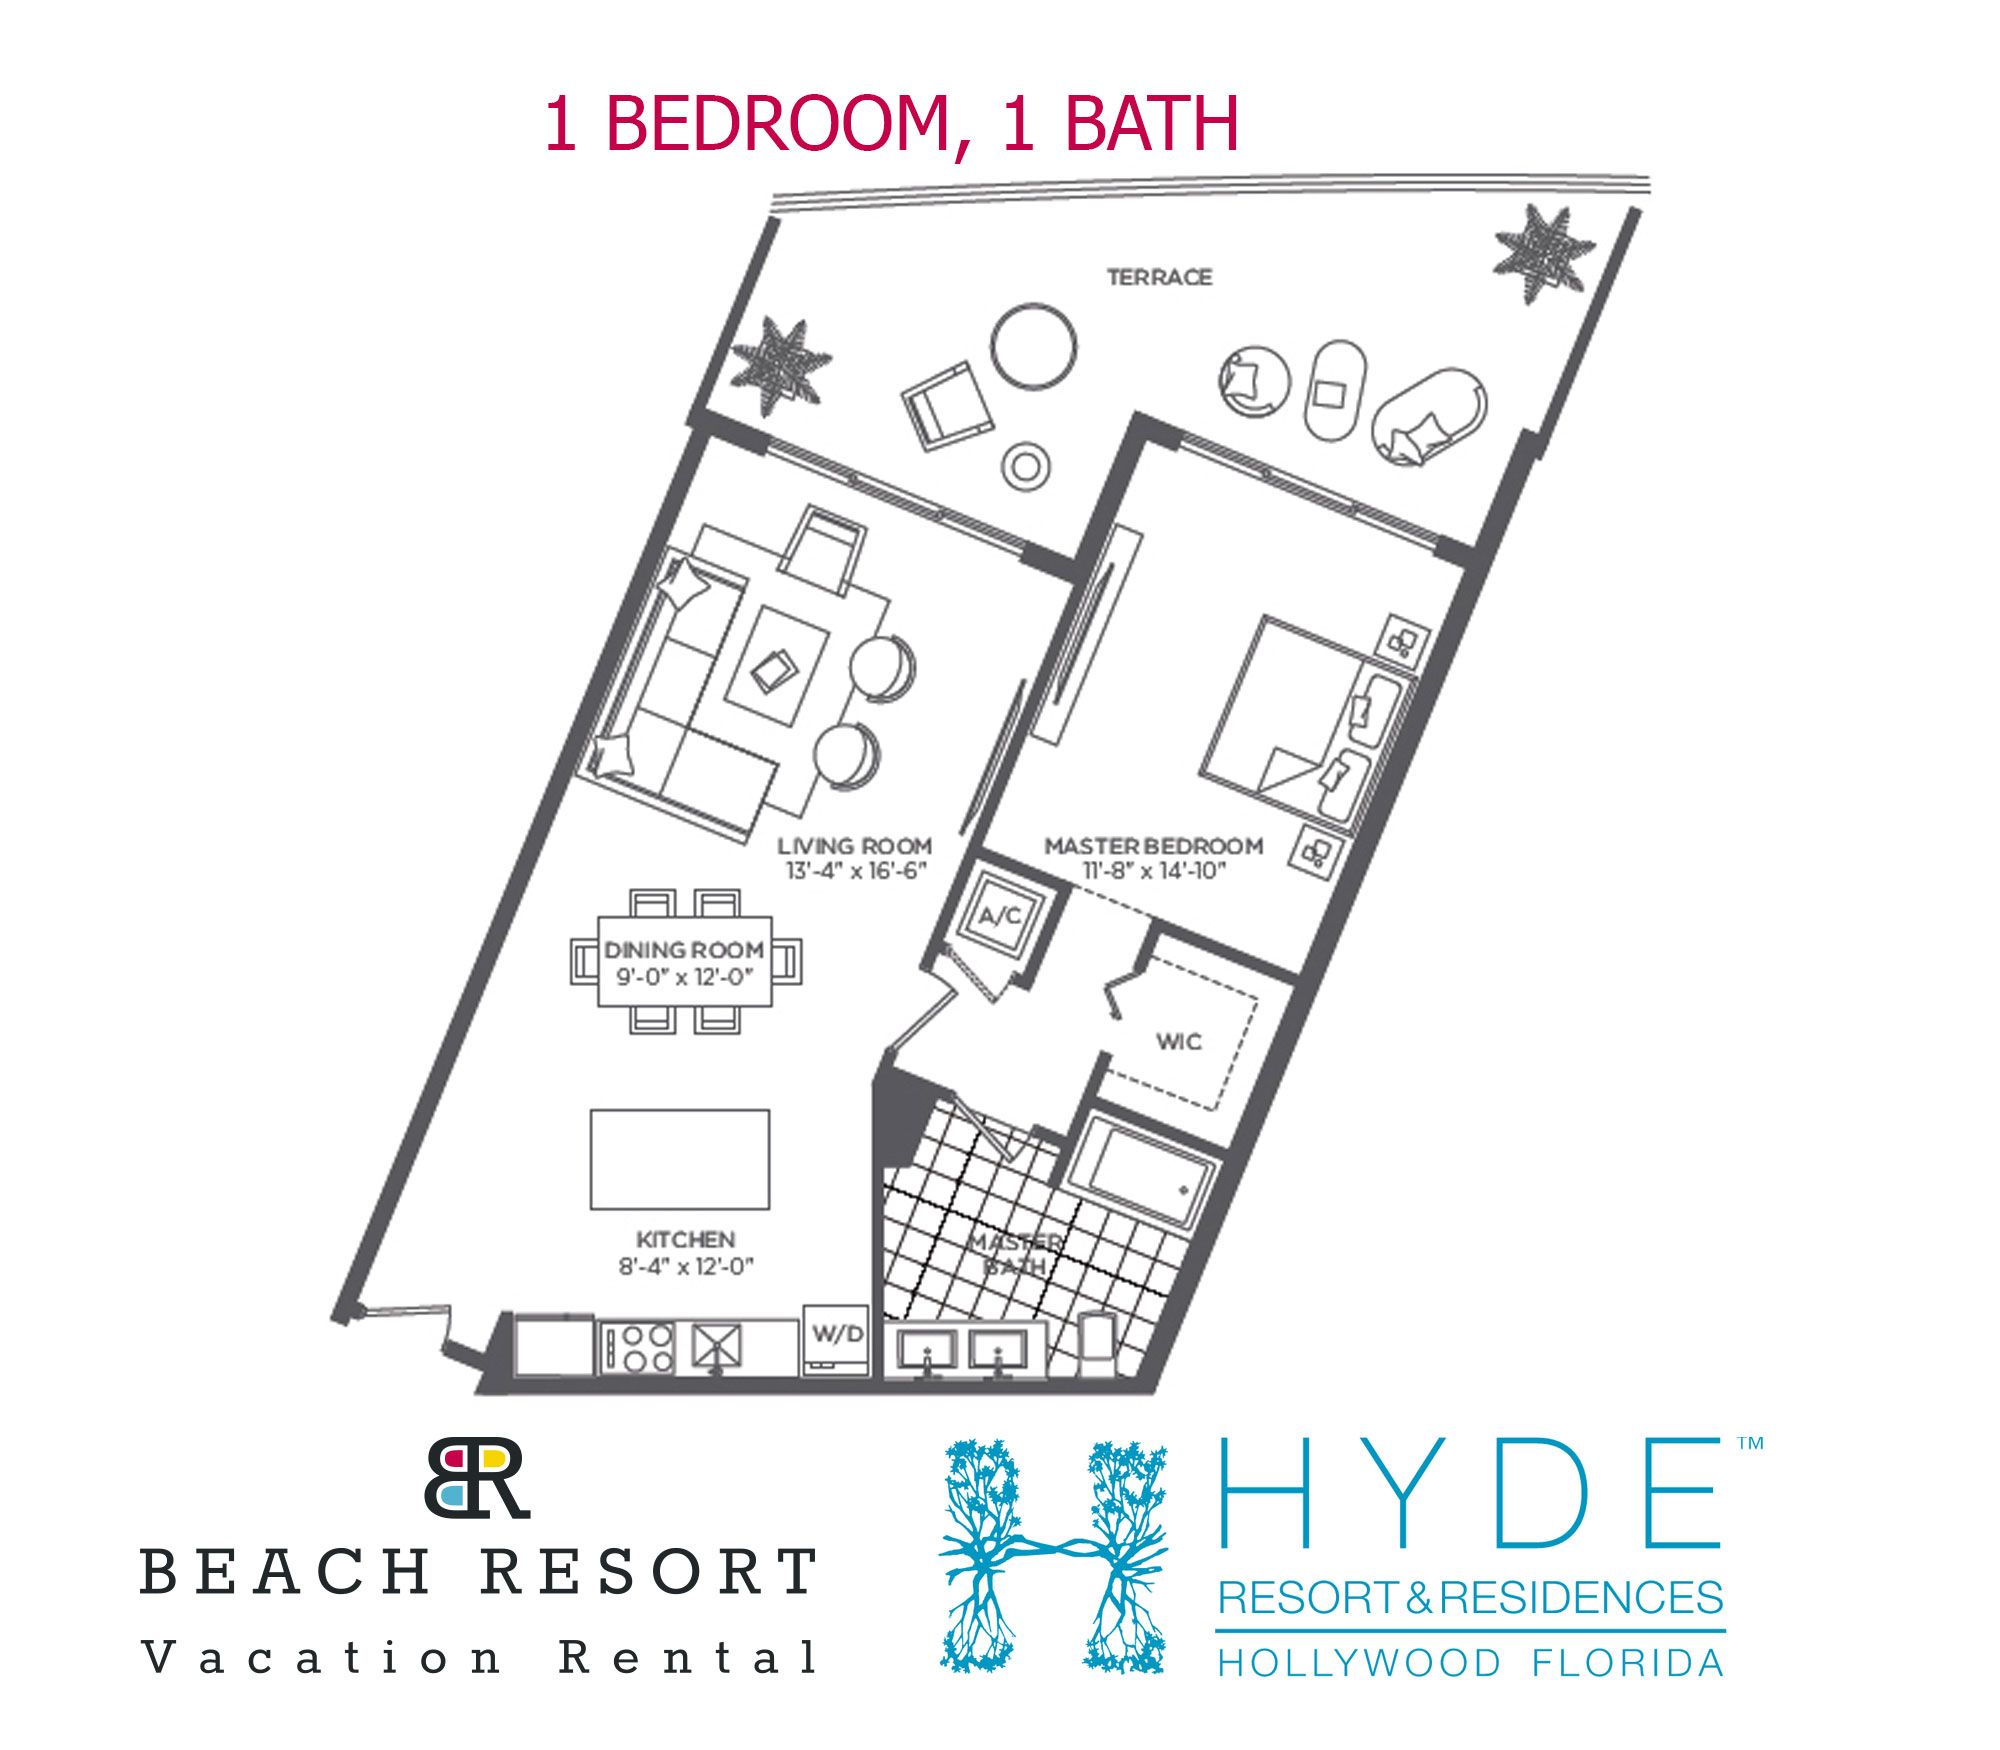 HYDE RESORT 1 BED